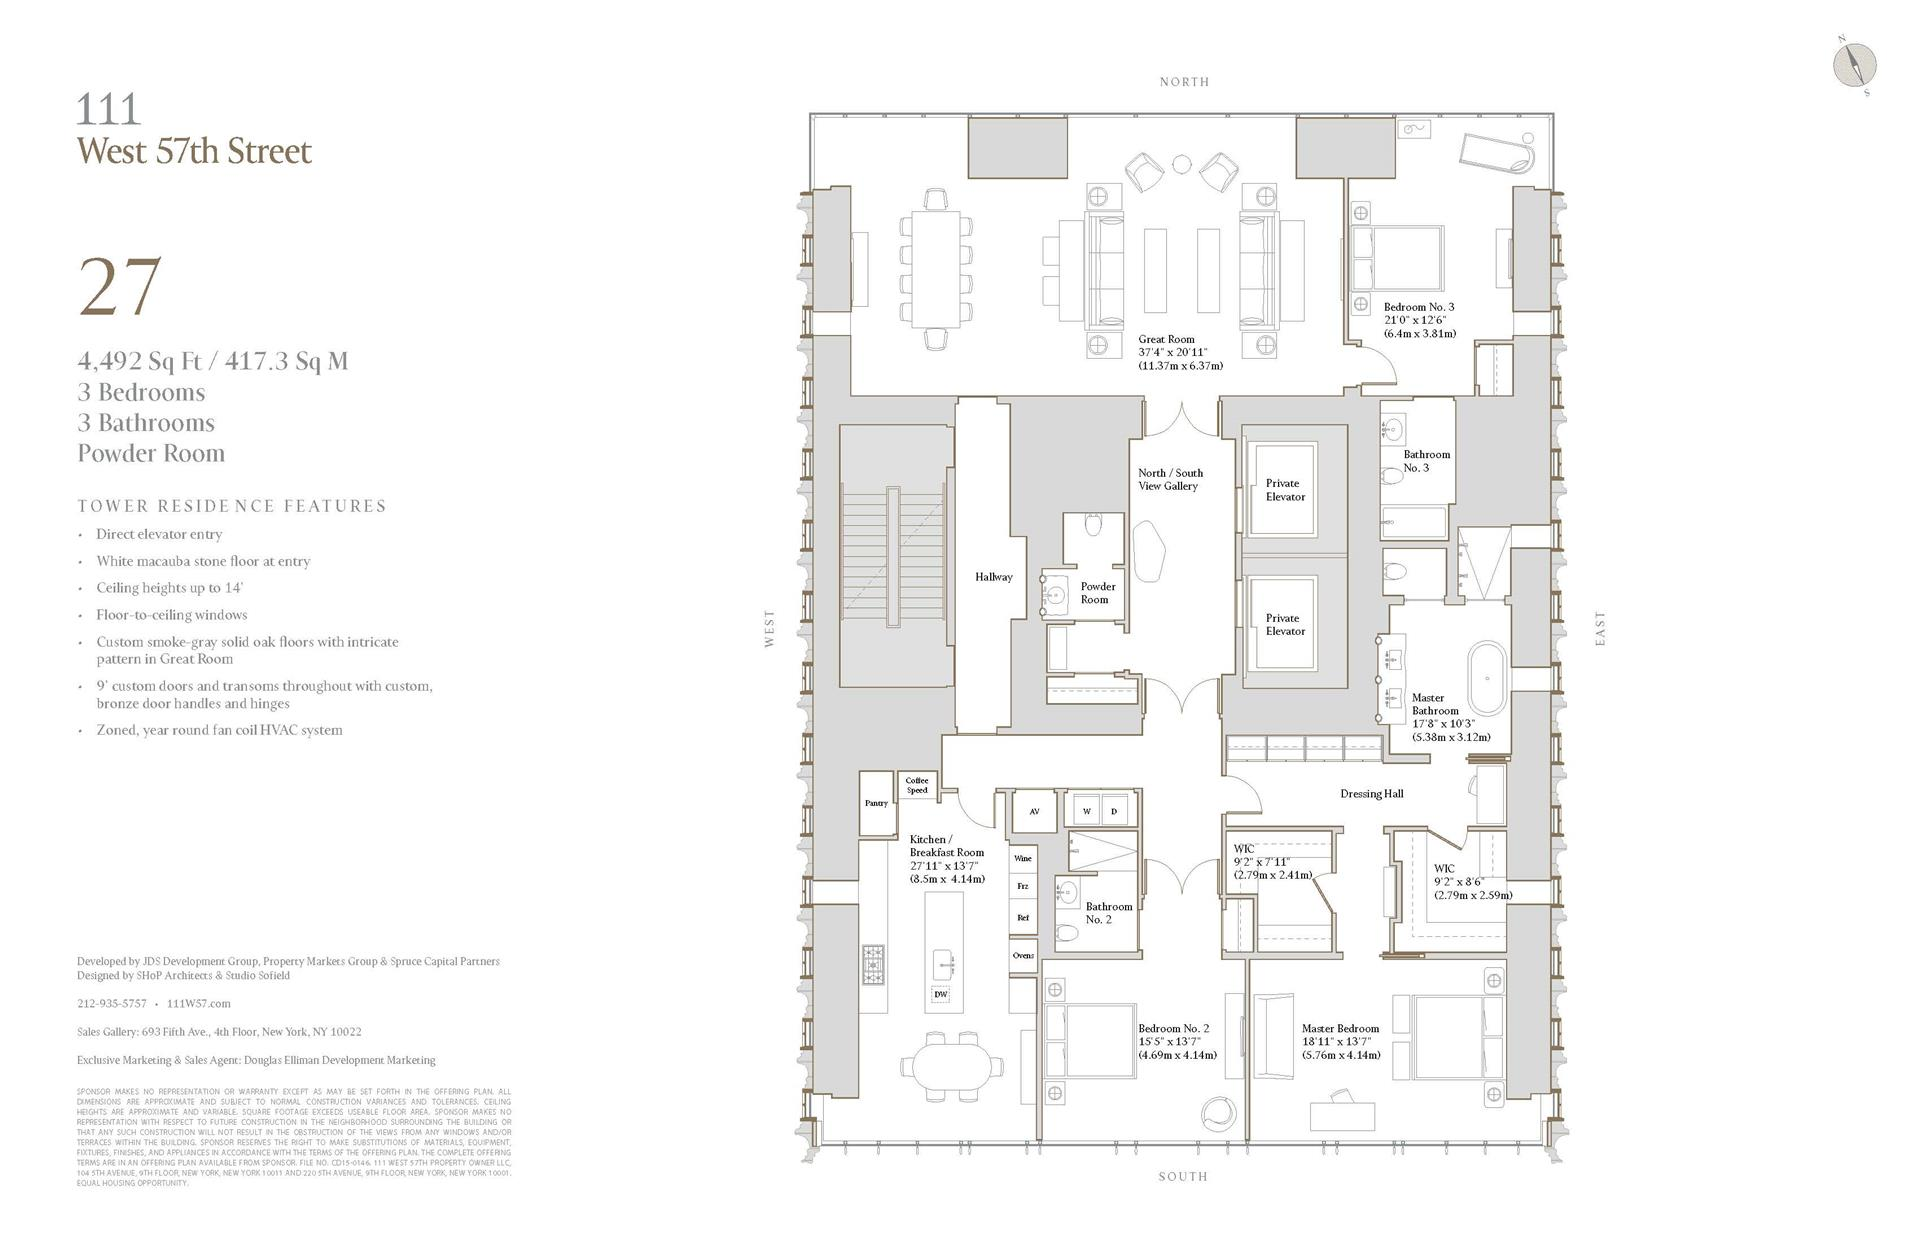 Floor plan of 111 West 57th Street, 27 - Central Park South, New York